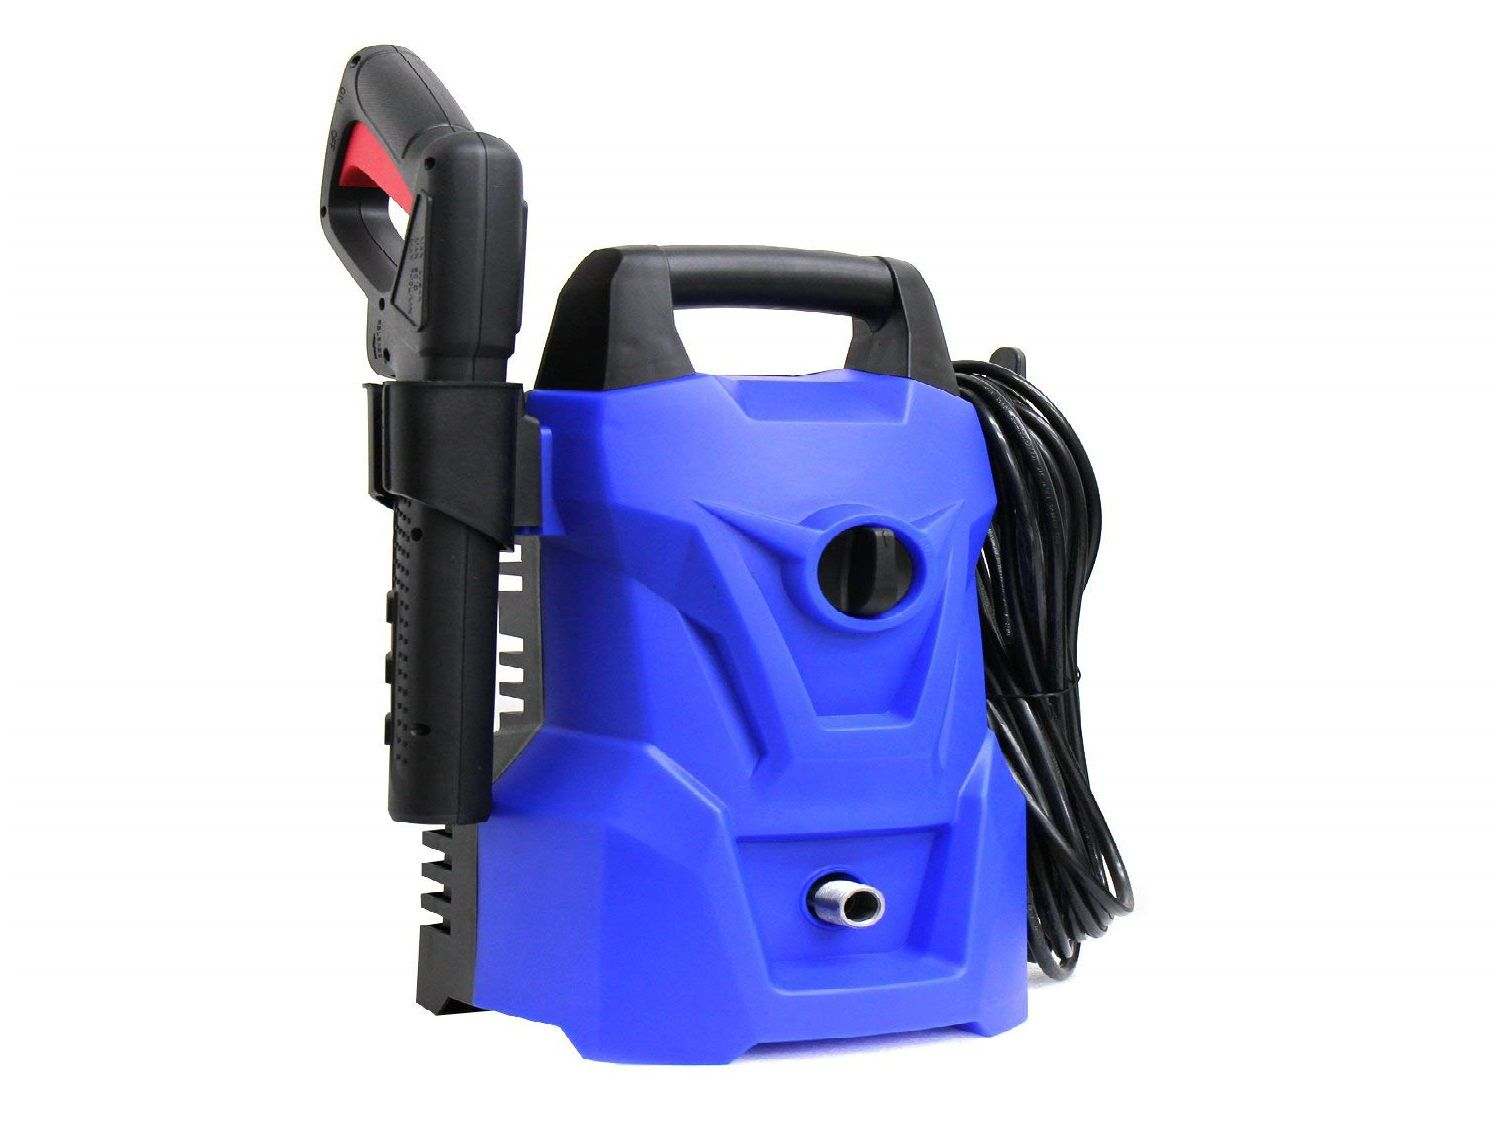 Azure Sky Electric Power Washer Review